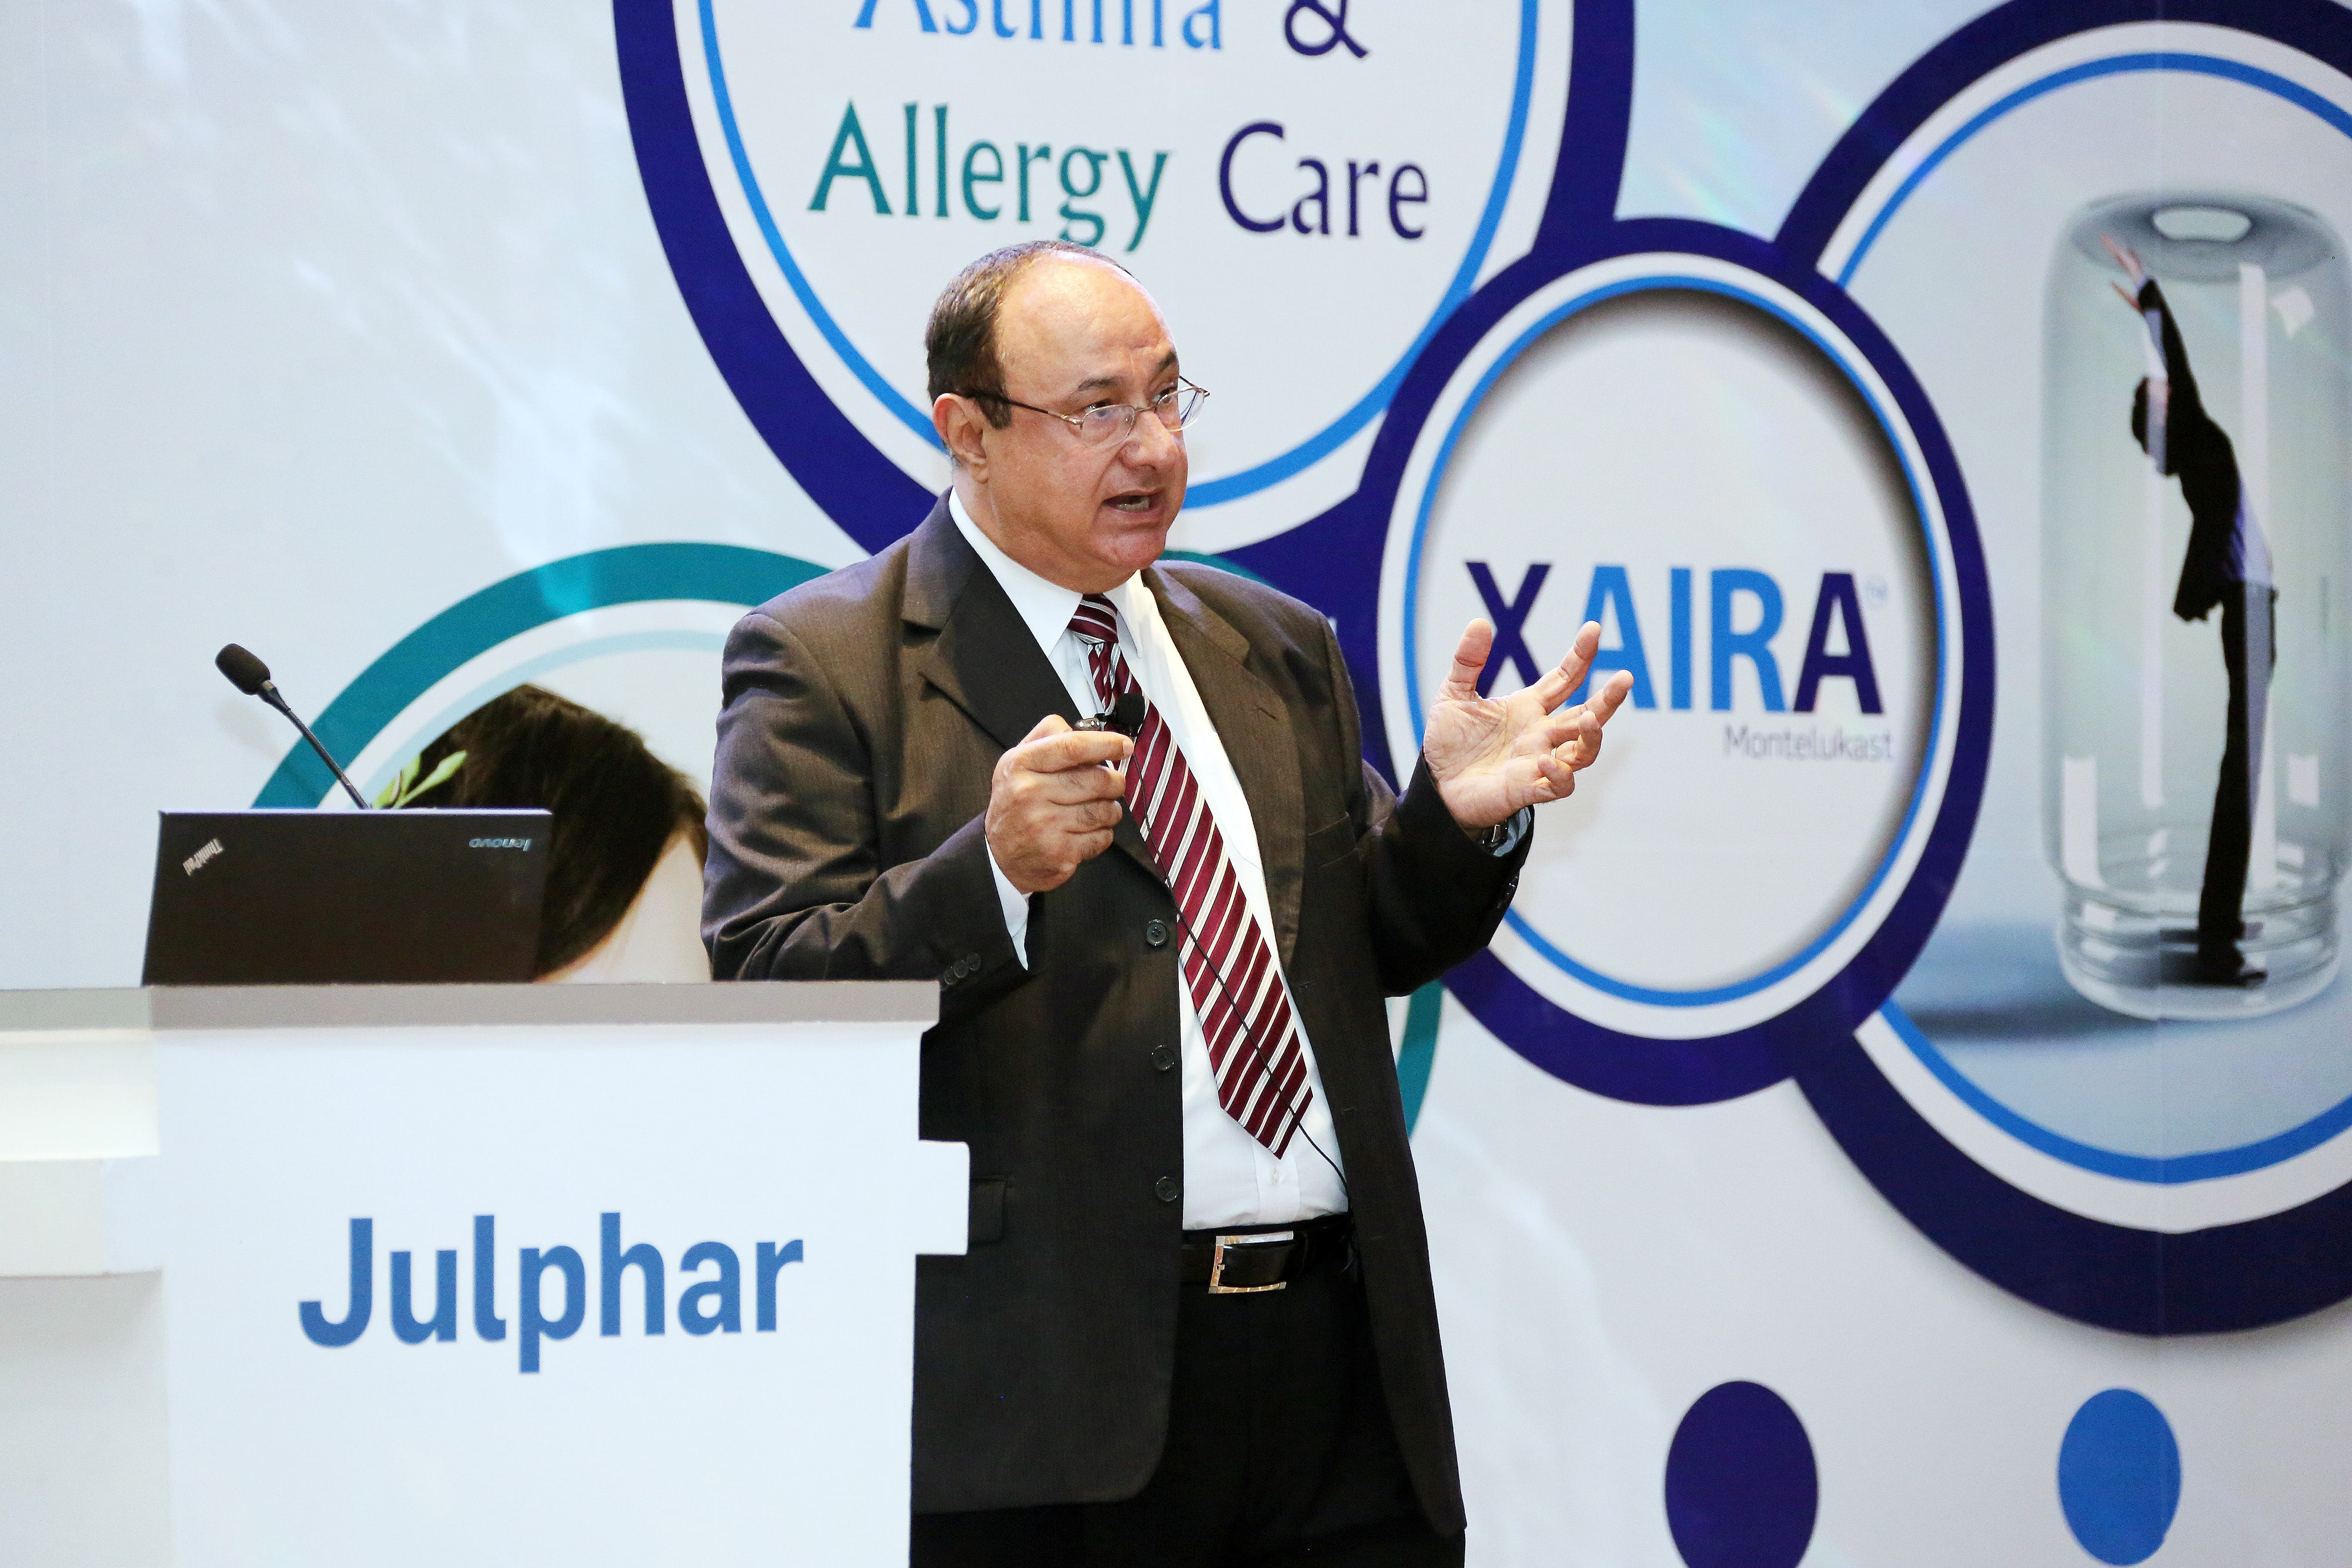 Julphar's Asthma & Allergy Awareness Day hosted in Dubai